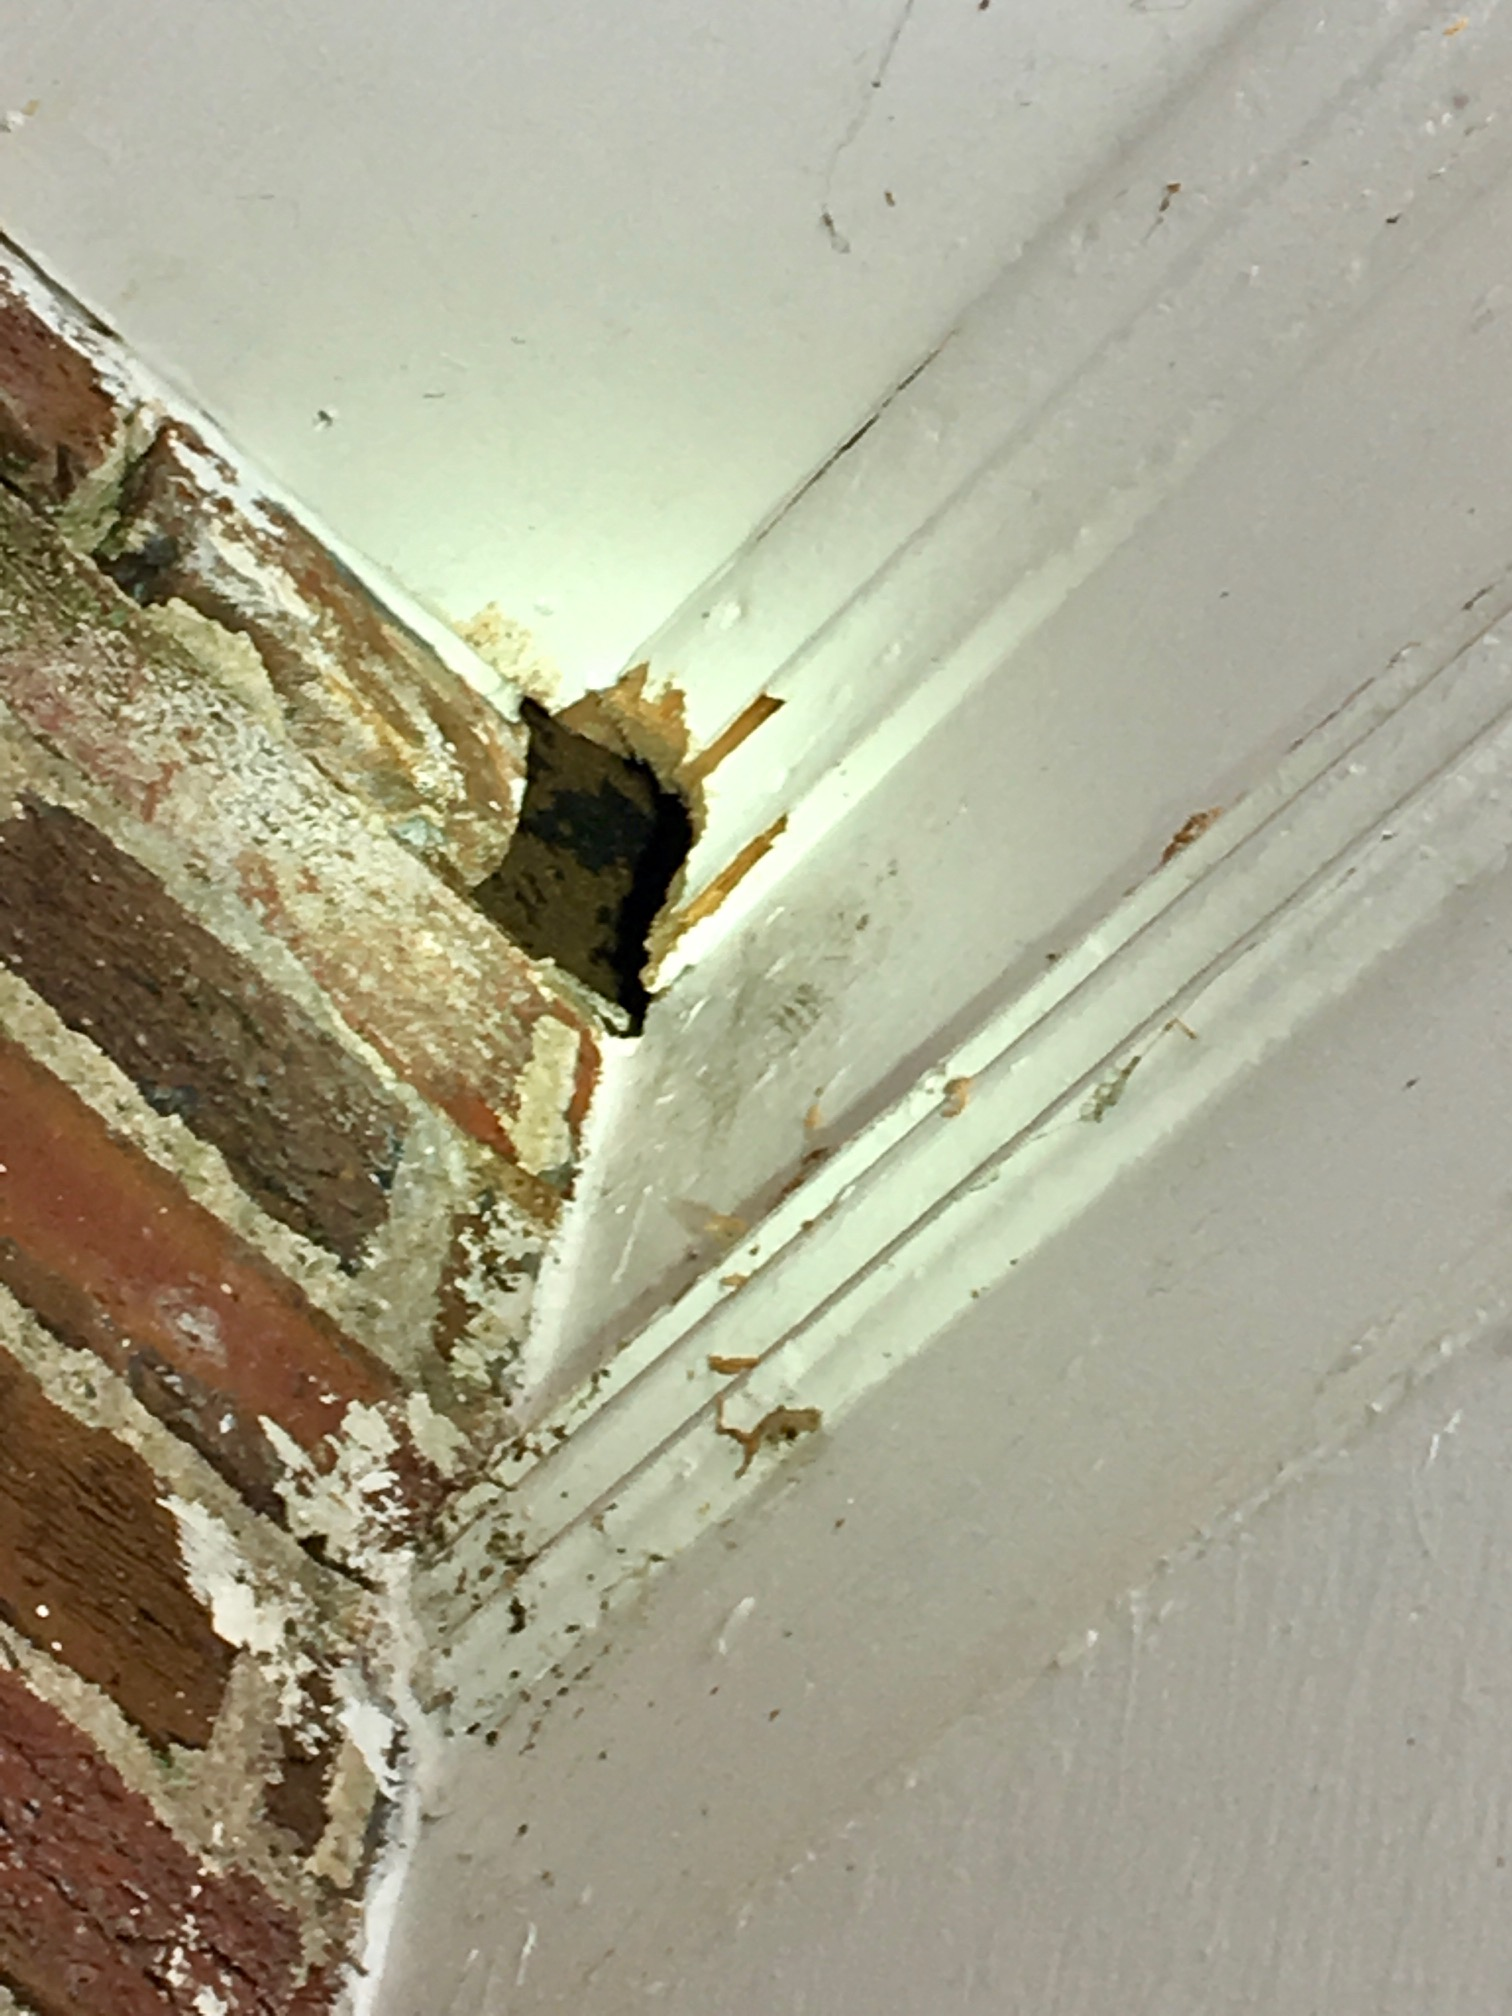 Squirrel hole that we located in a corner of brick and siding.